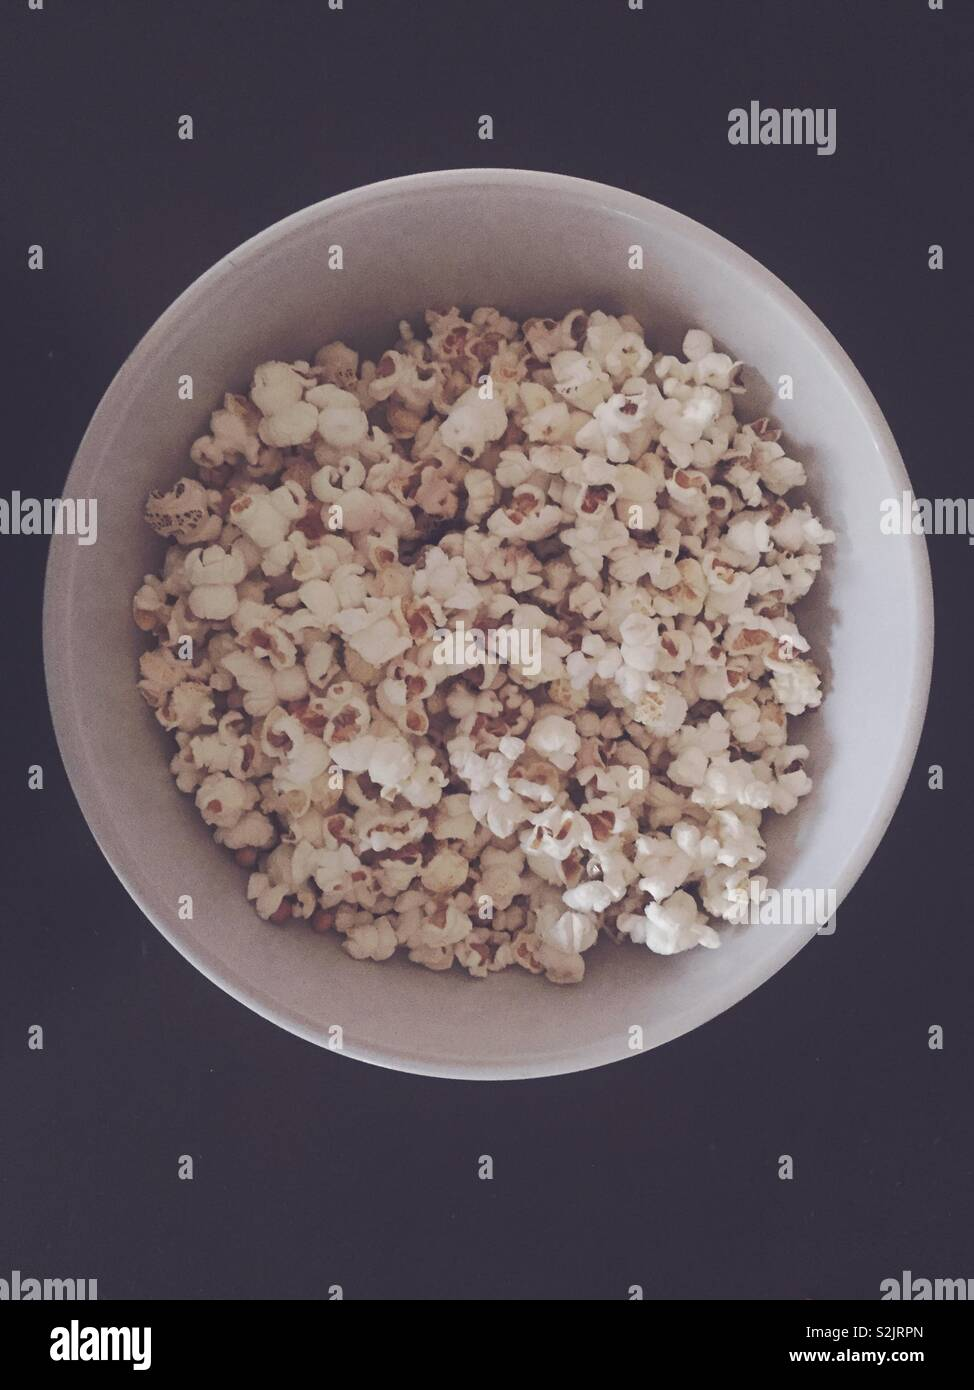 Home made popcorn inside of bowl. No microwave. - Stock Image